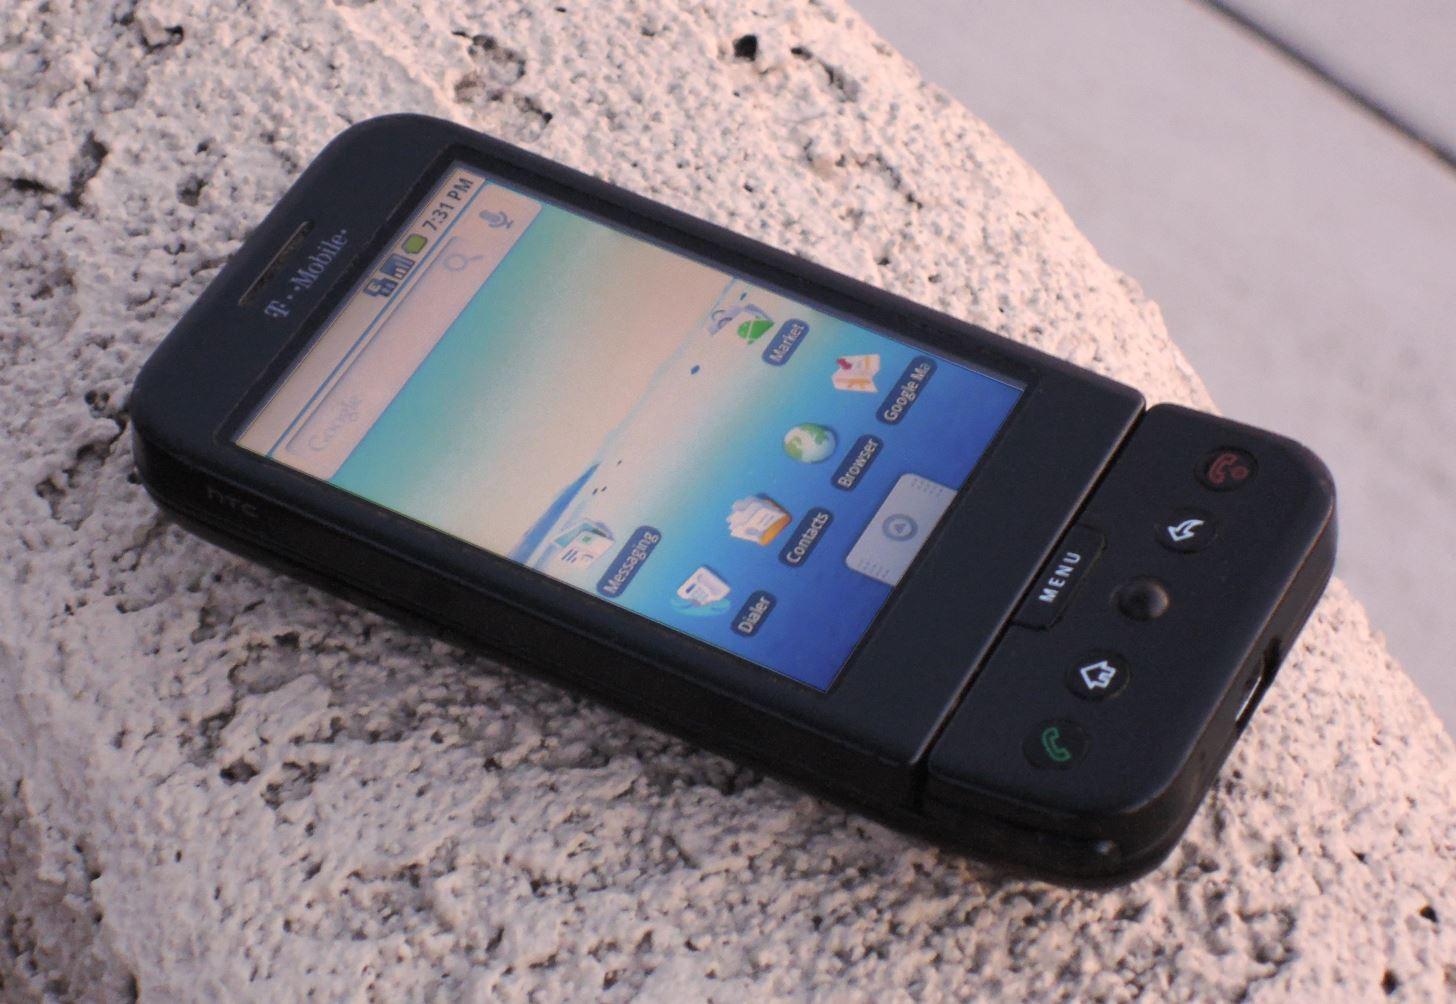 The first Android phone debuted 10 years ago this month - What a difference a decade makes